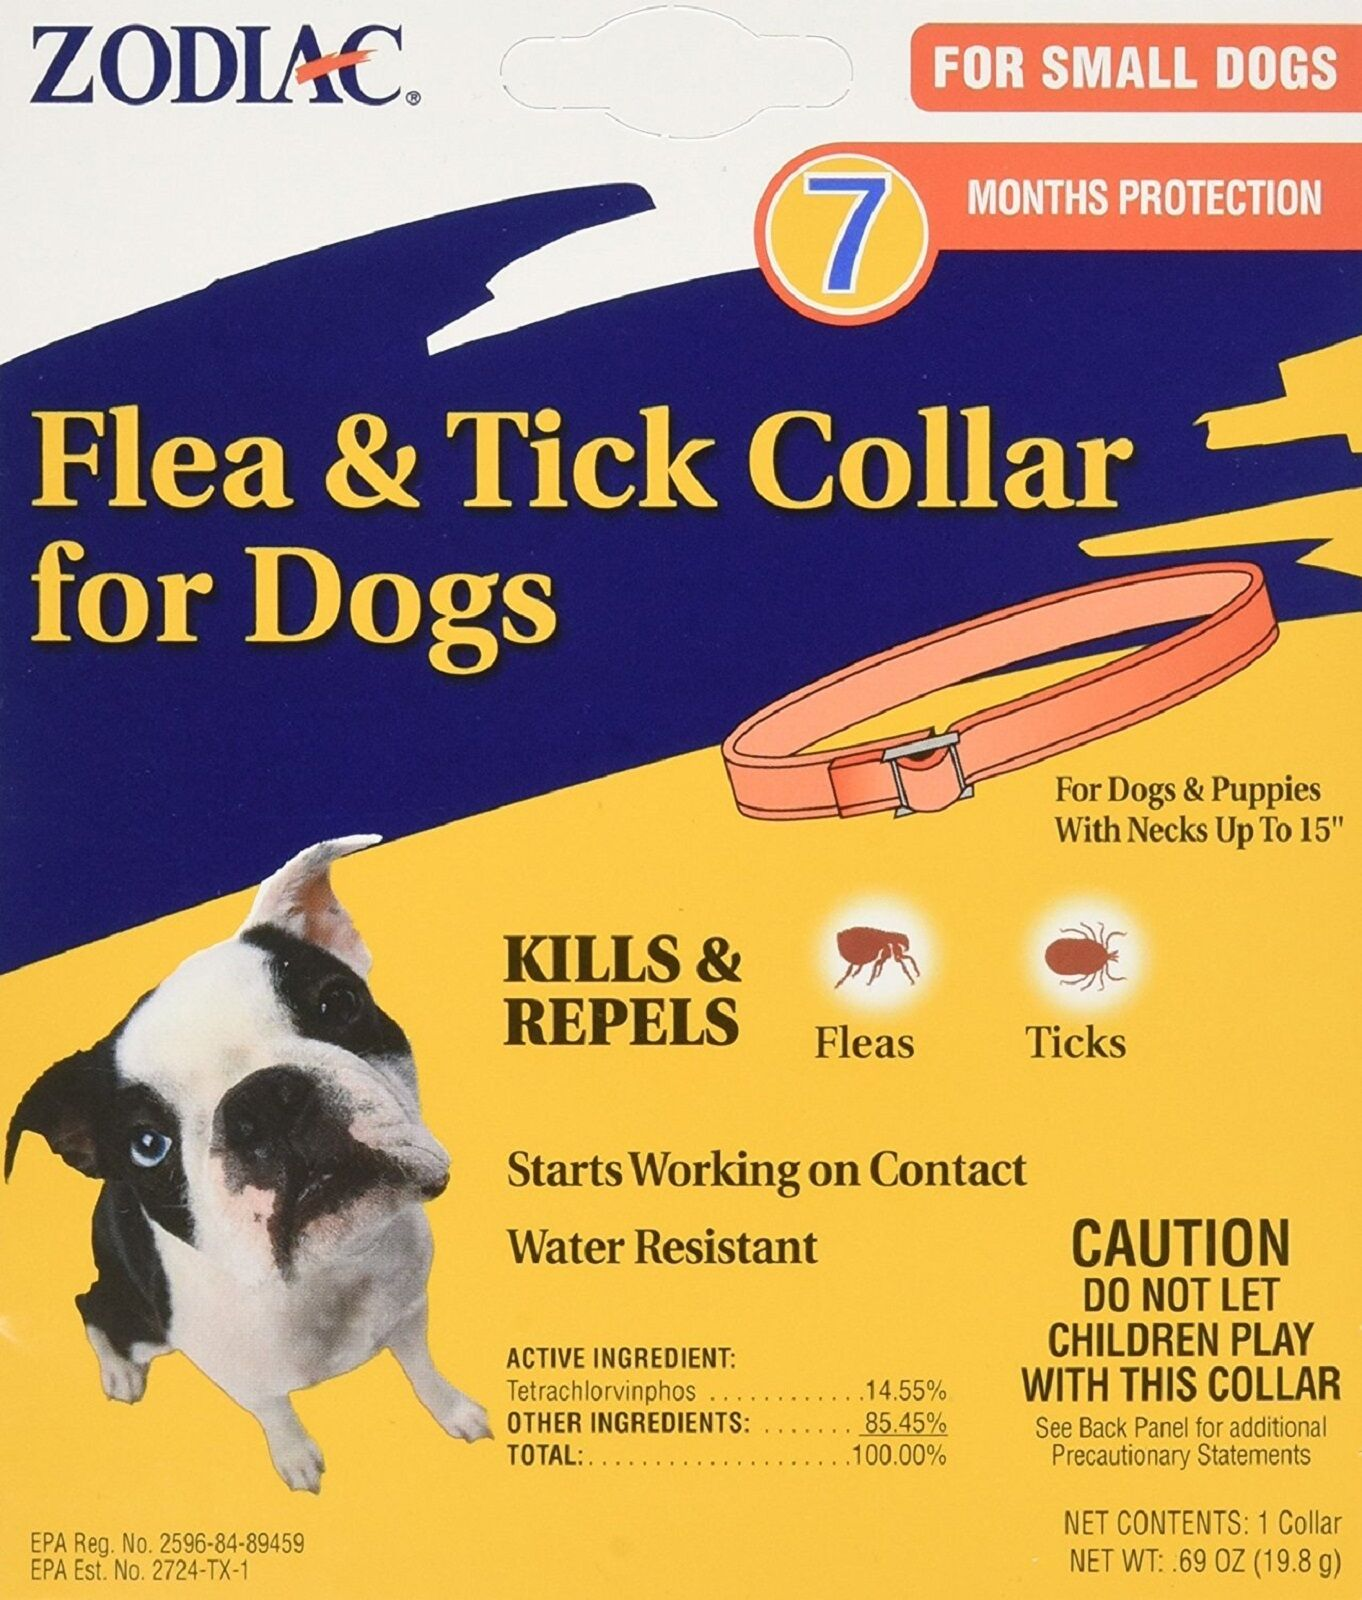 Zodiac Flea and Tick Collar for Small Dogs, 15""